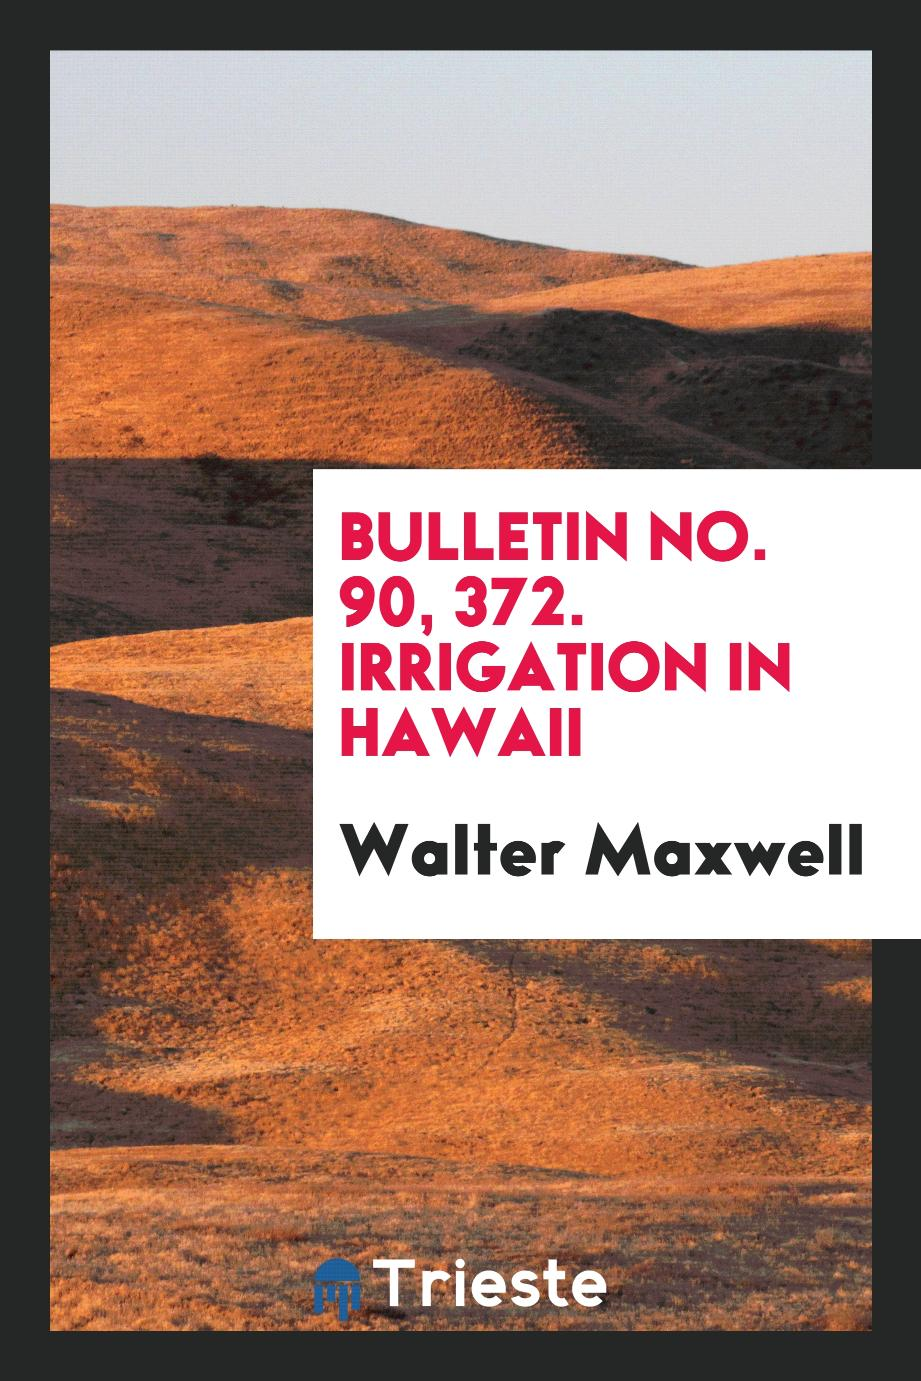 Bulletin No. 90, 372. Irrigation in Hawaii